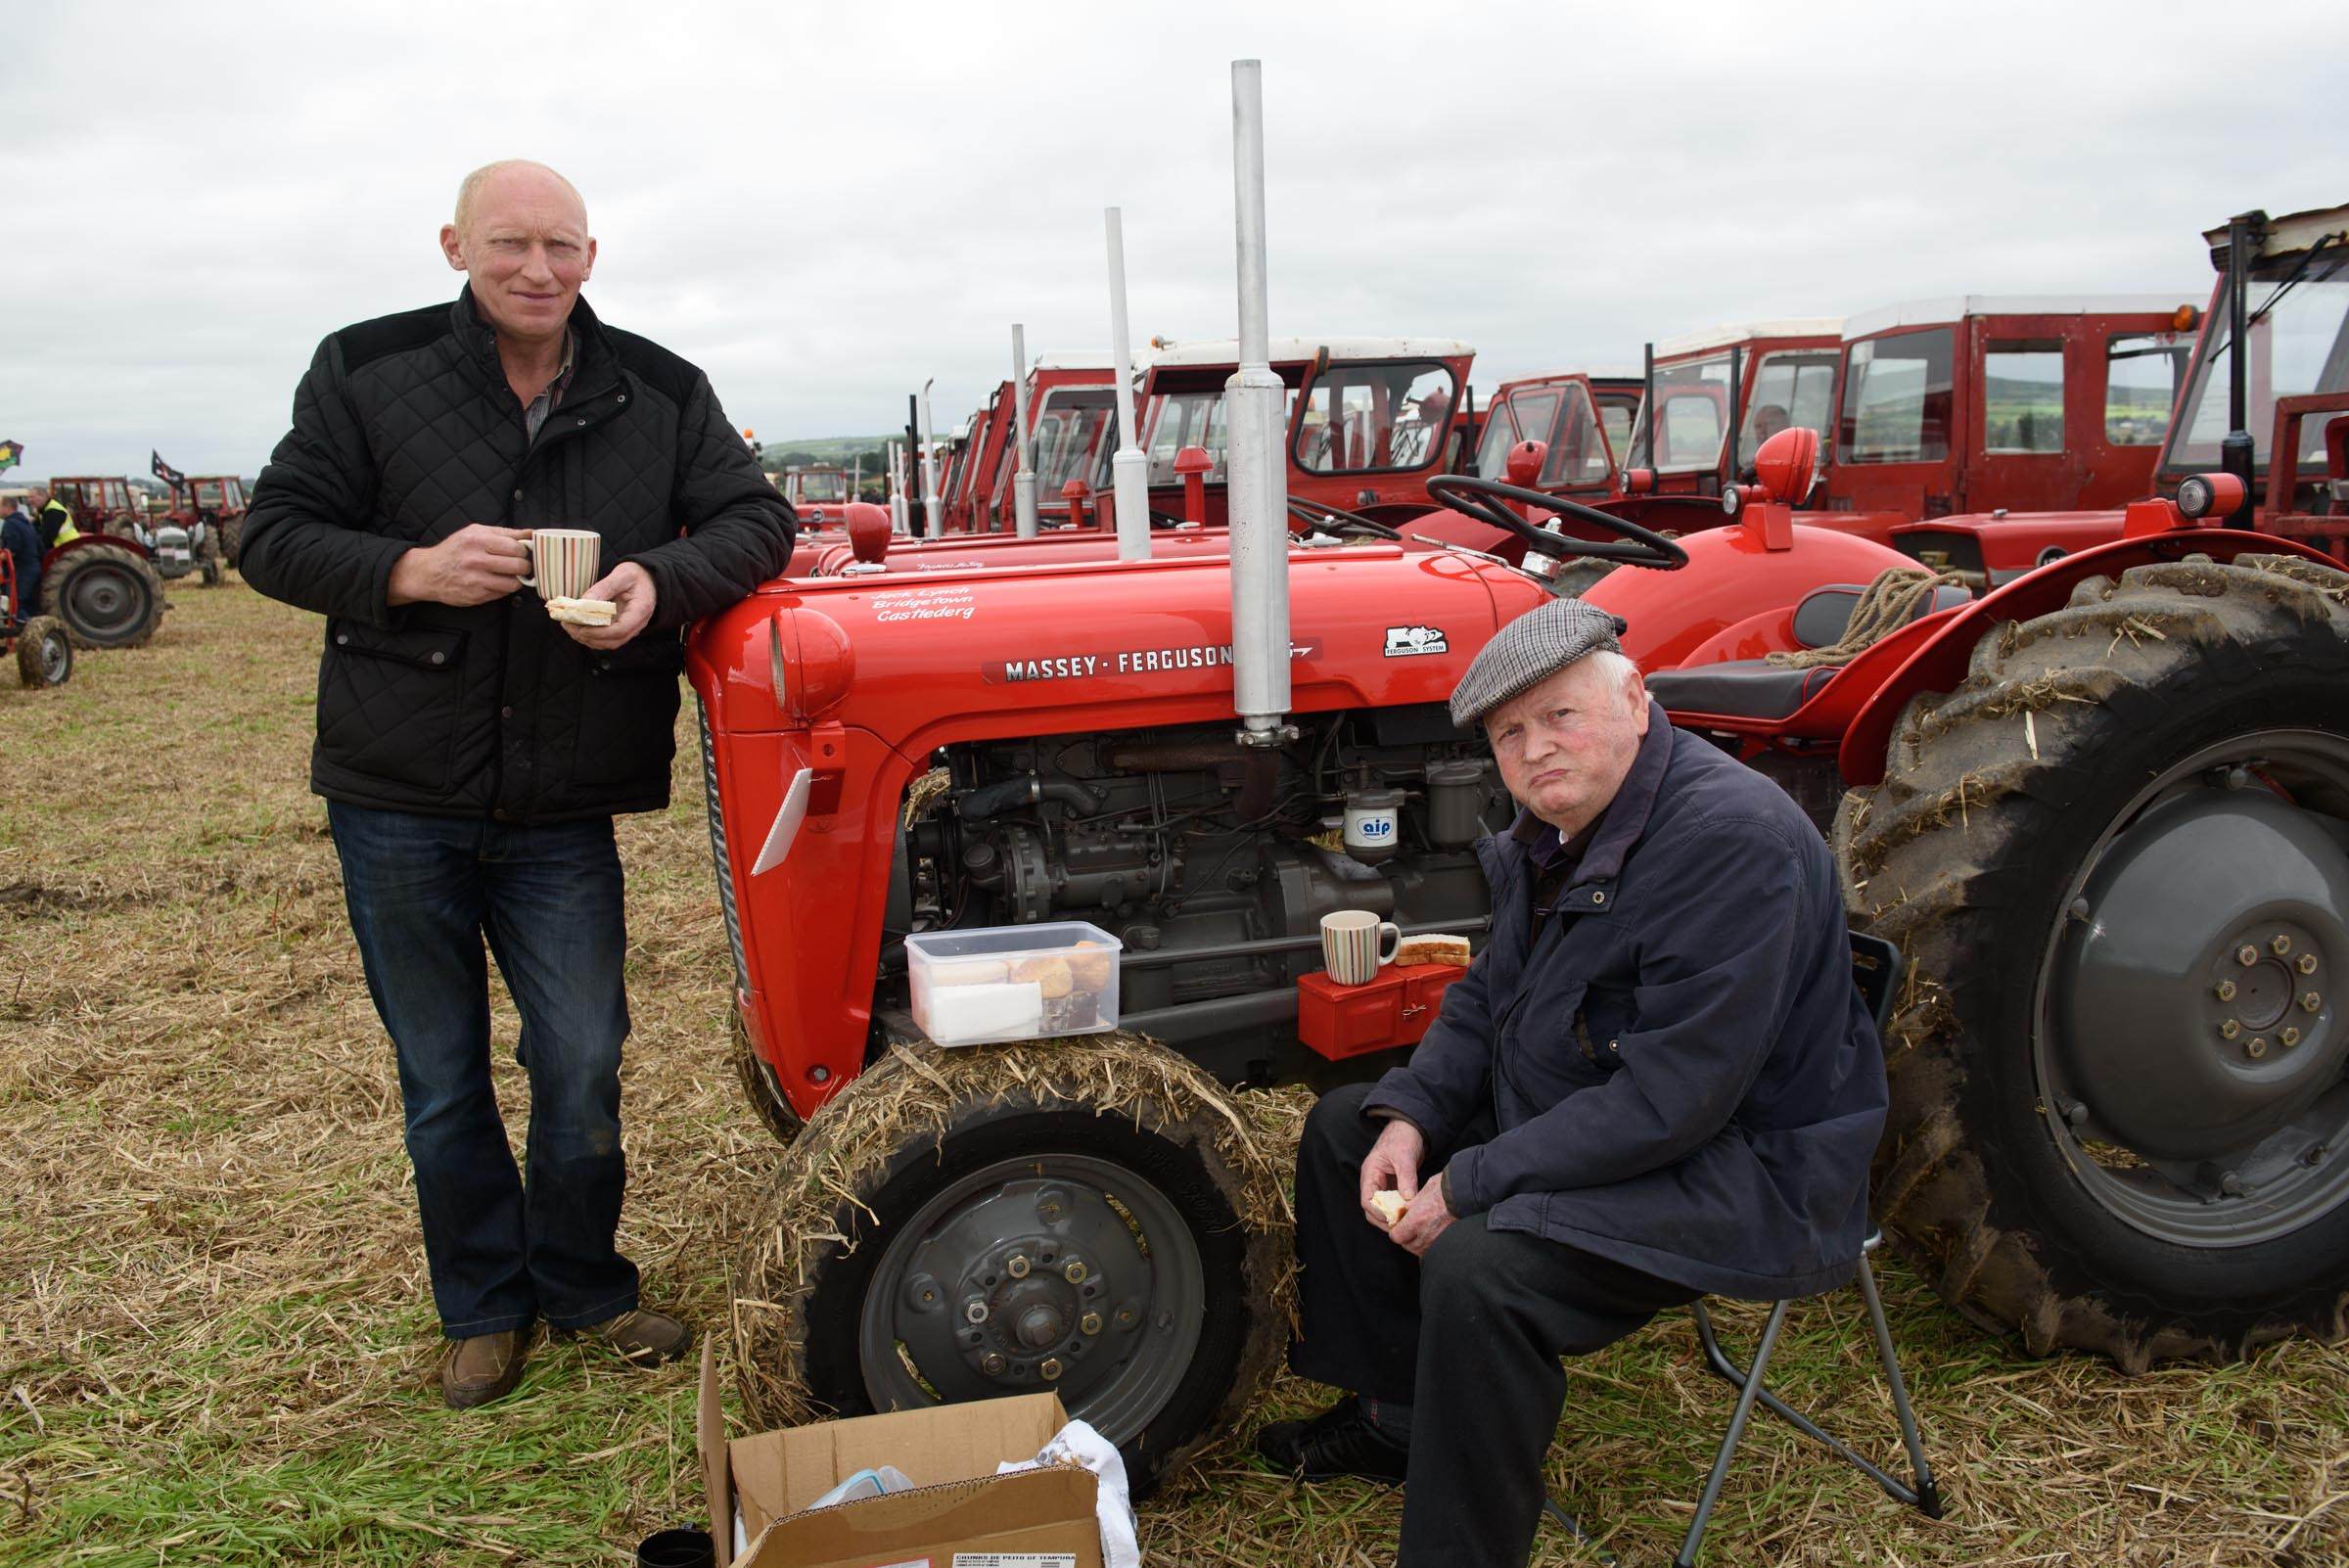 Great gathering for Massey Ferguson record attempt – pic